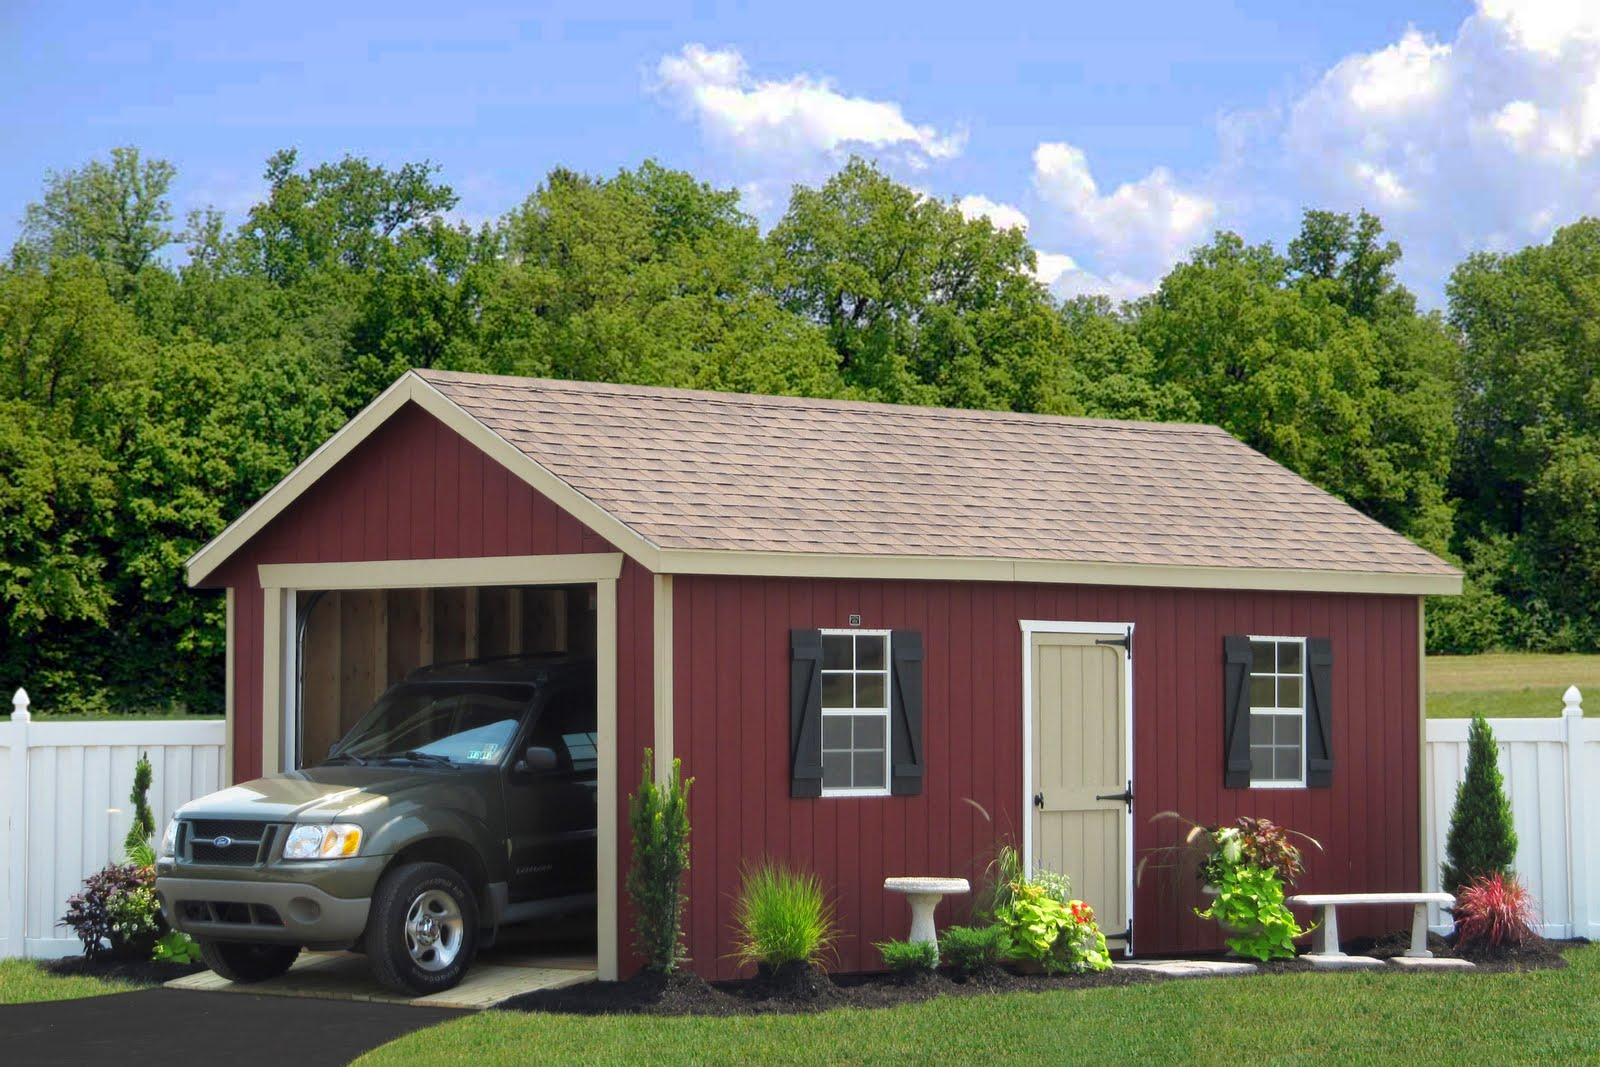 Bels 8x8 wood shed new york for 5 car garage